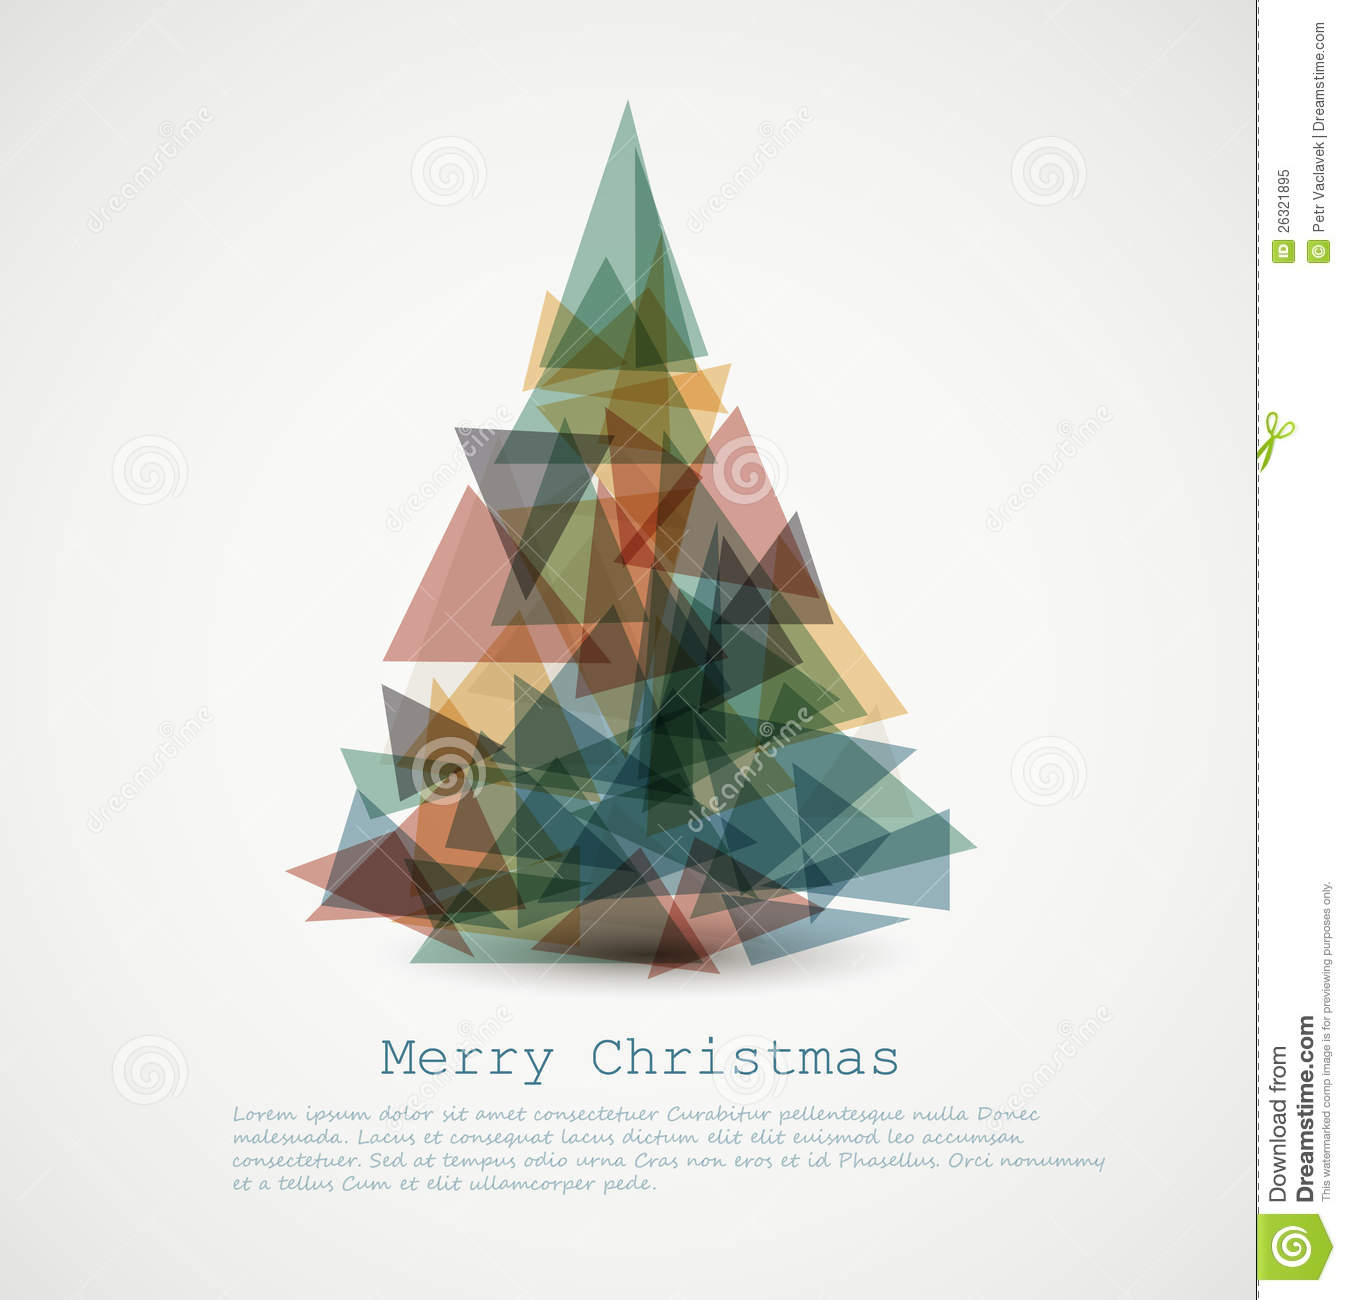 royalty free stock photo download vector card with abstract retro christmas tree - Retro Christmas Trees